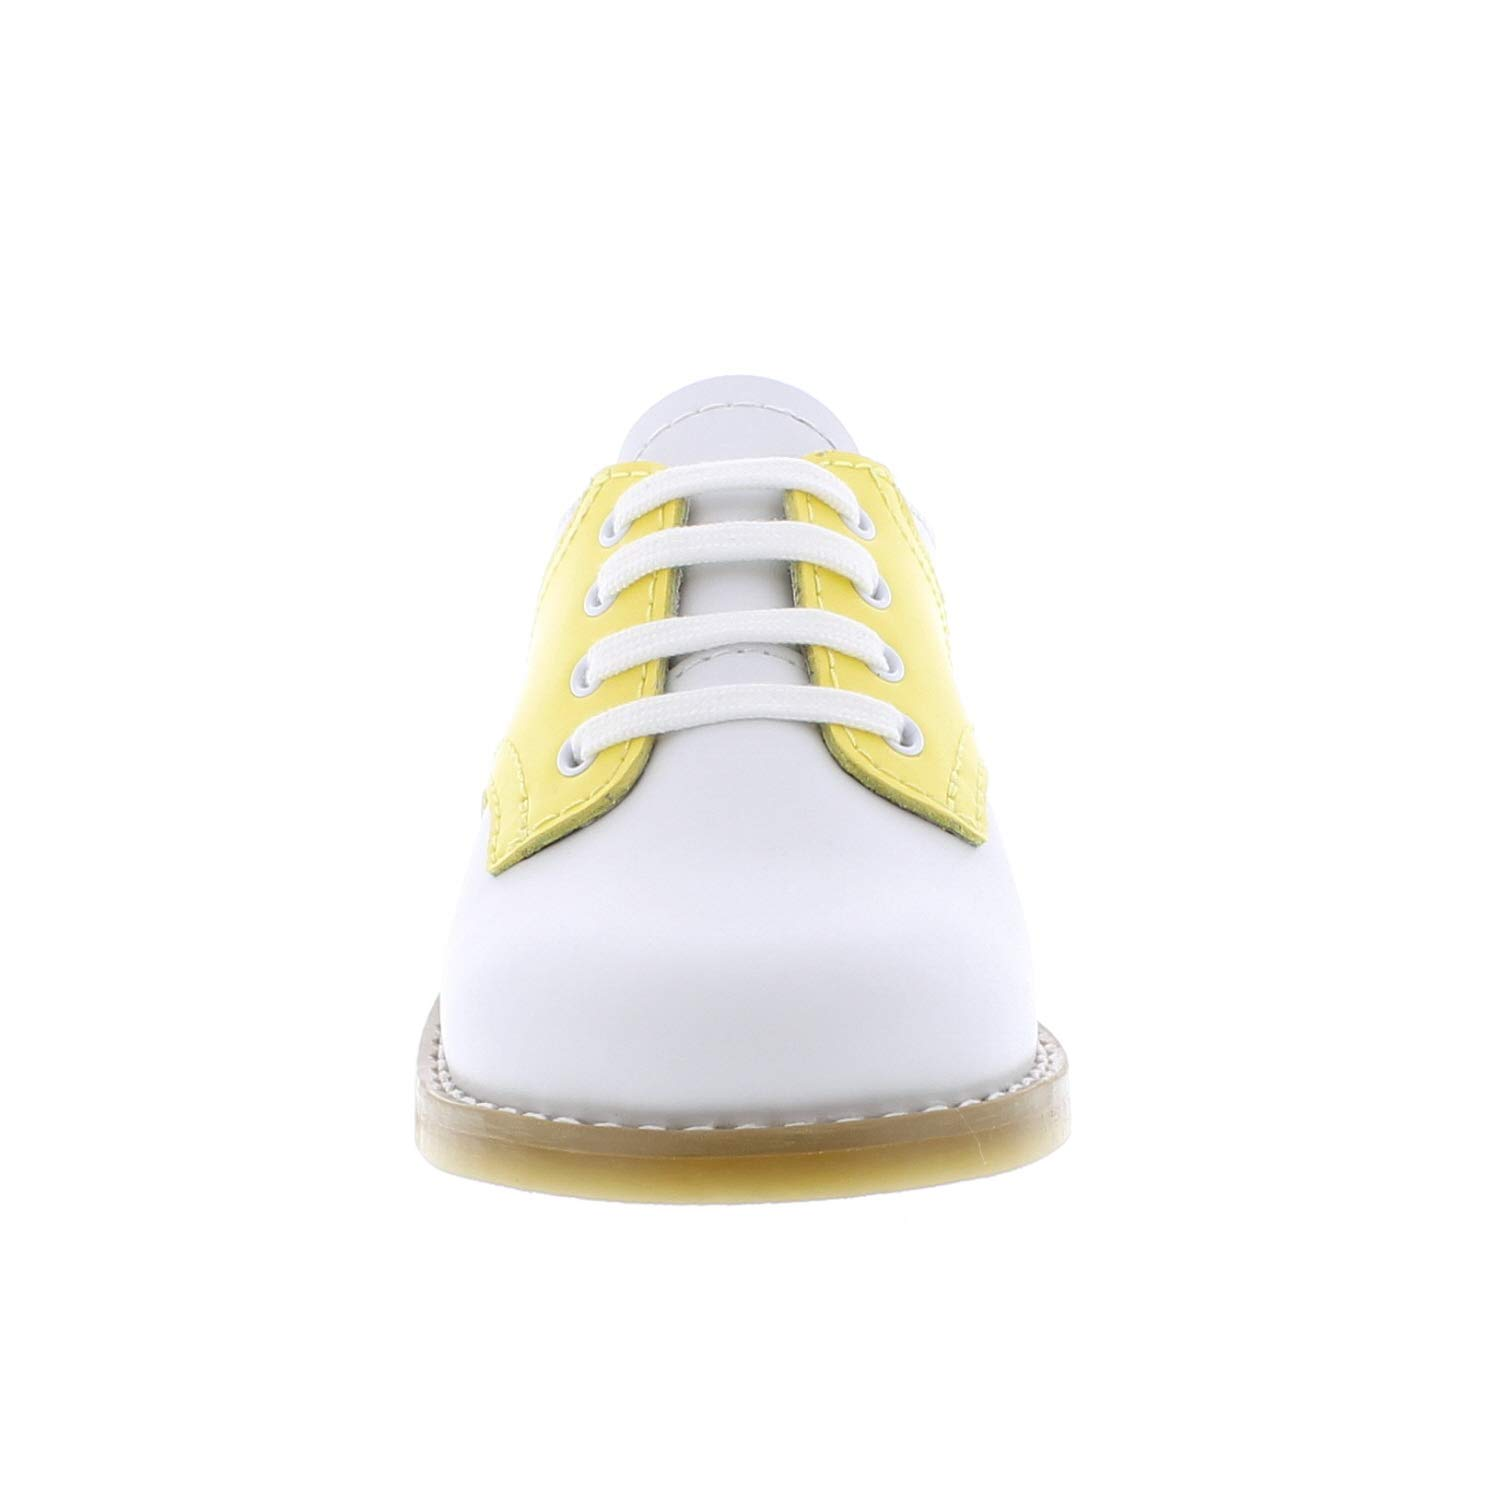 FOOTMATES Cheer Saddle White//Sunbeam 8411//6 Toddler M//W